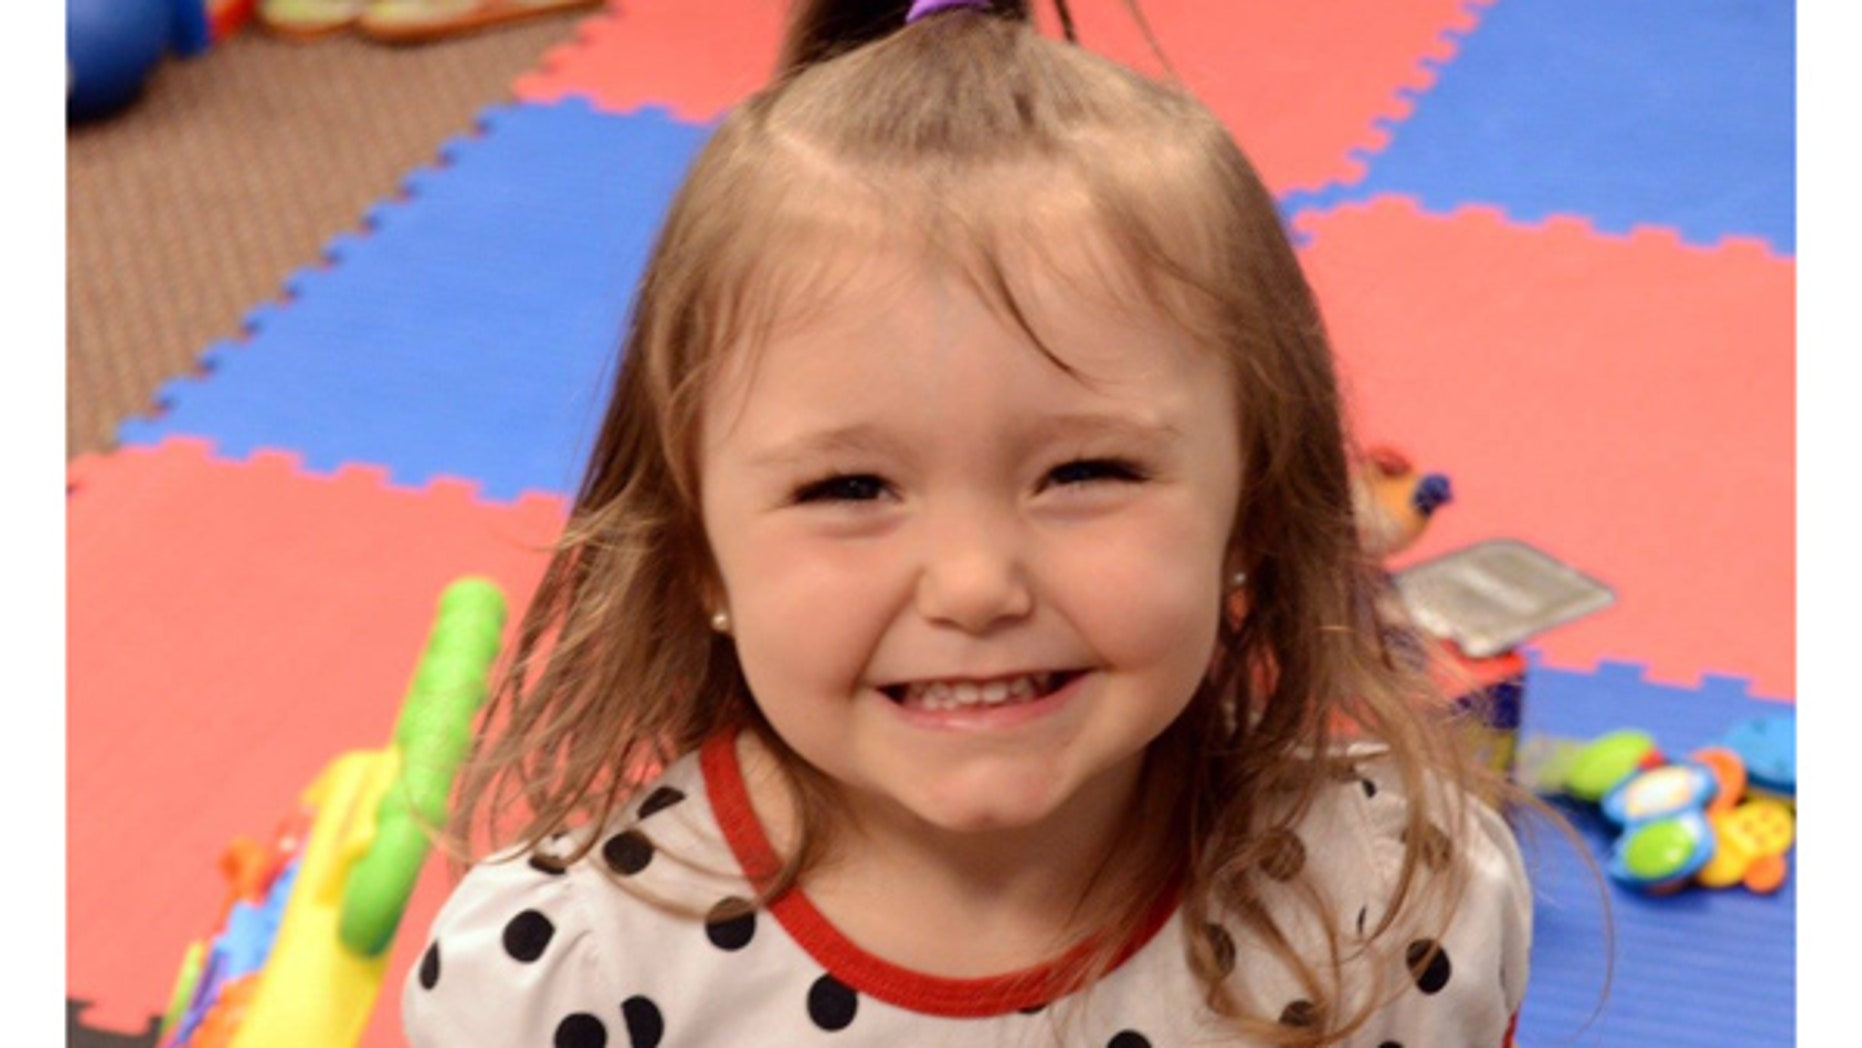 The Dalsing's 3-year-old adopted daughter, Braelynn, is pictured in a photo provided by the family.